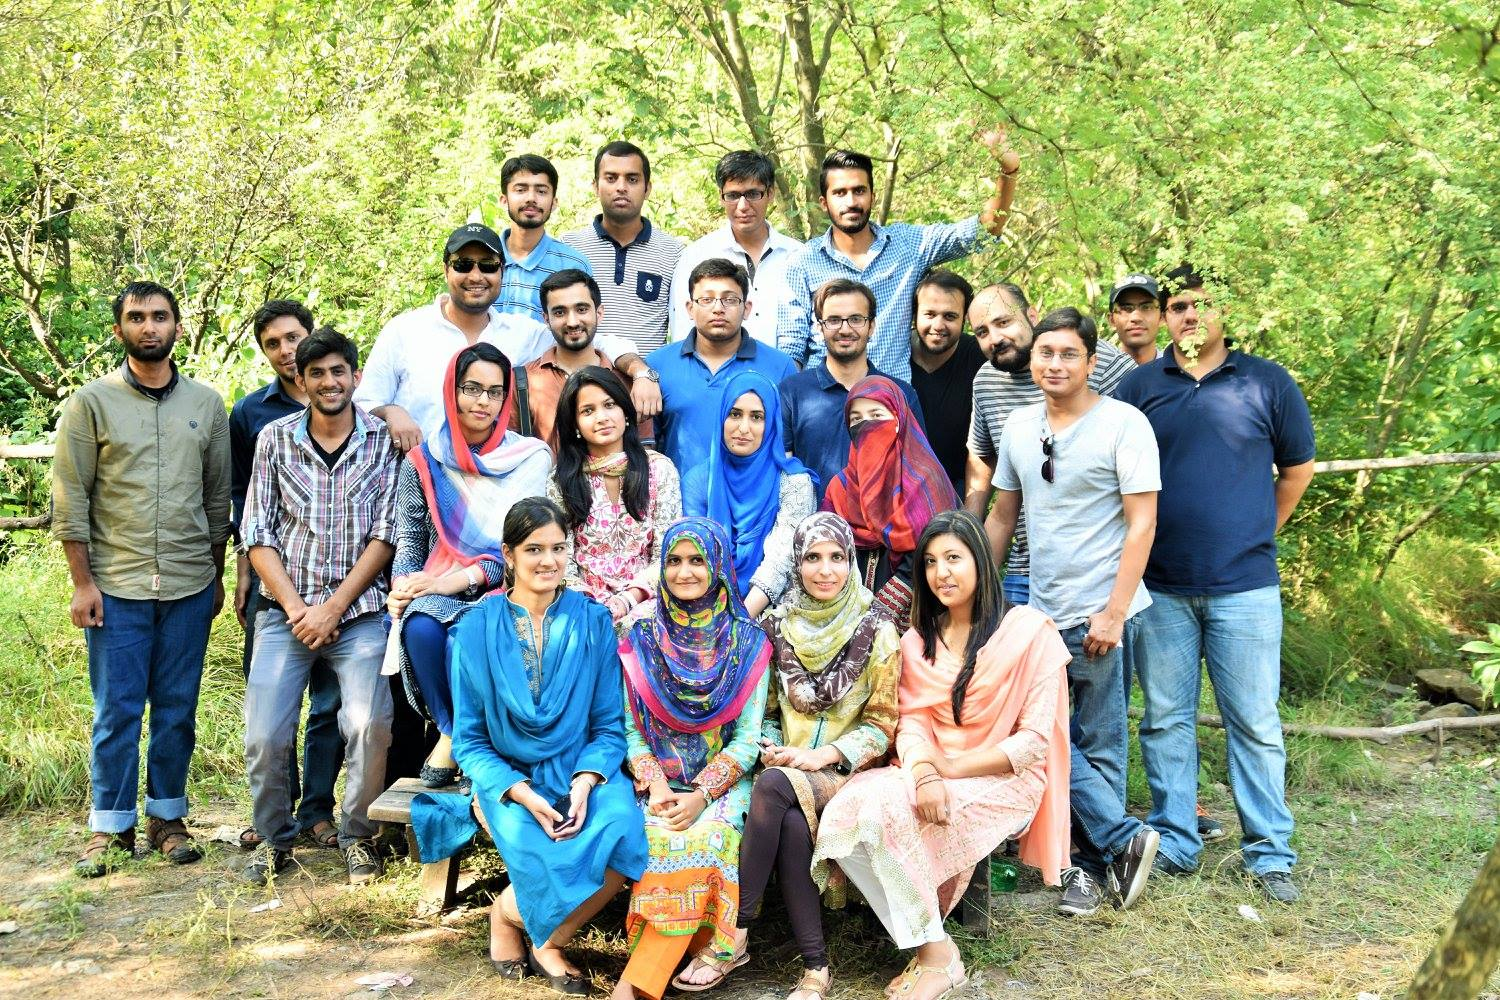 Get Together At Trail-5, Islamabad (2015)